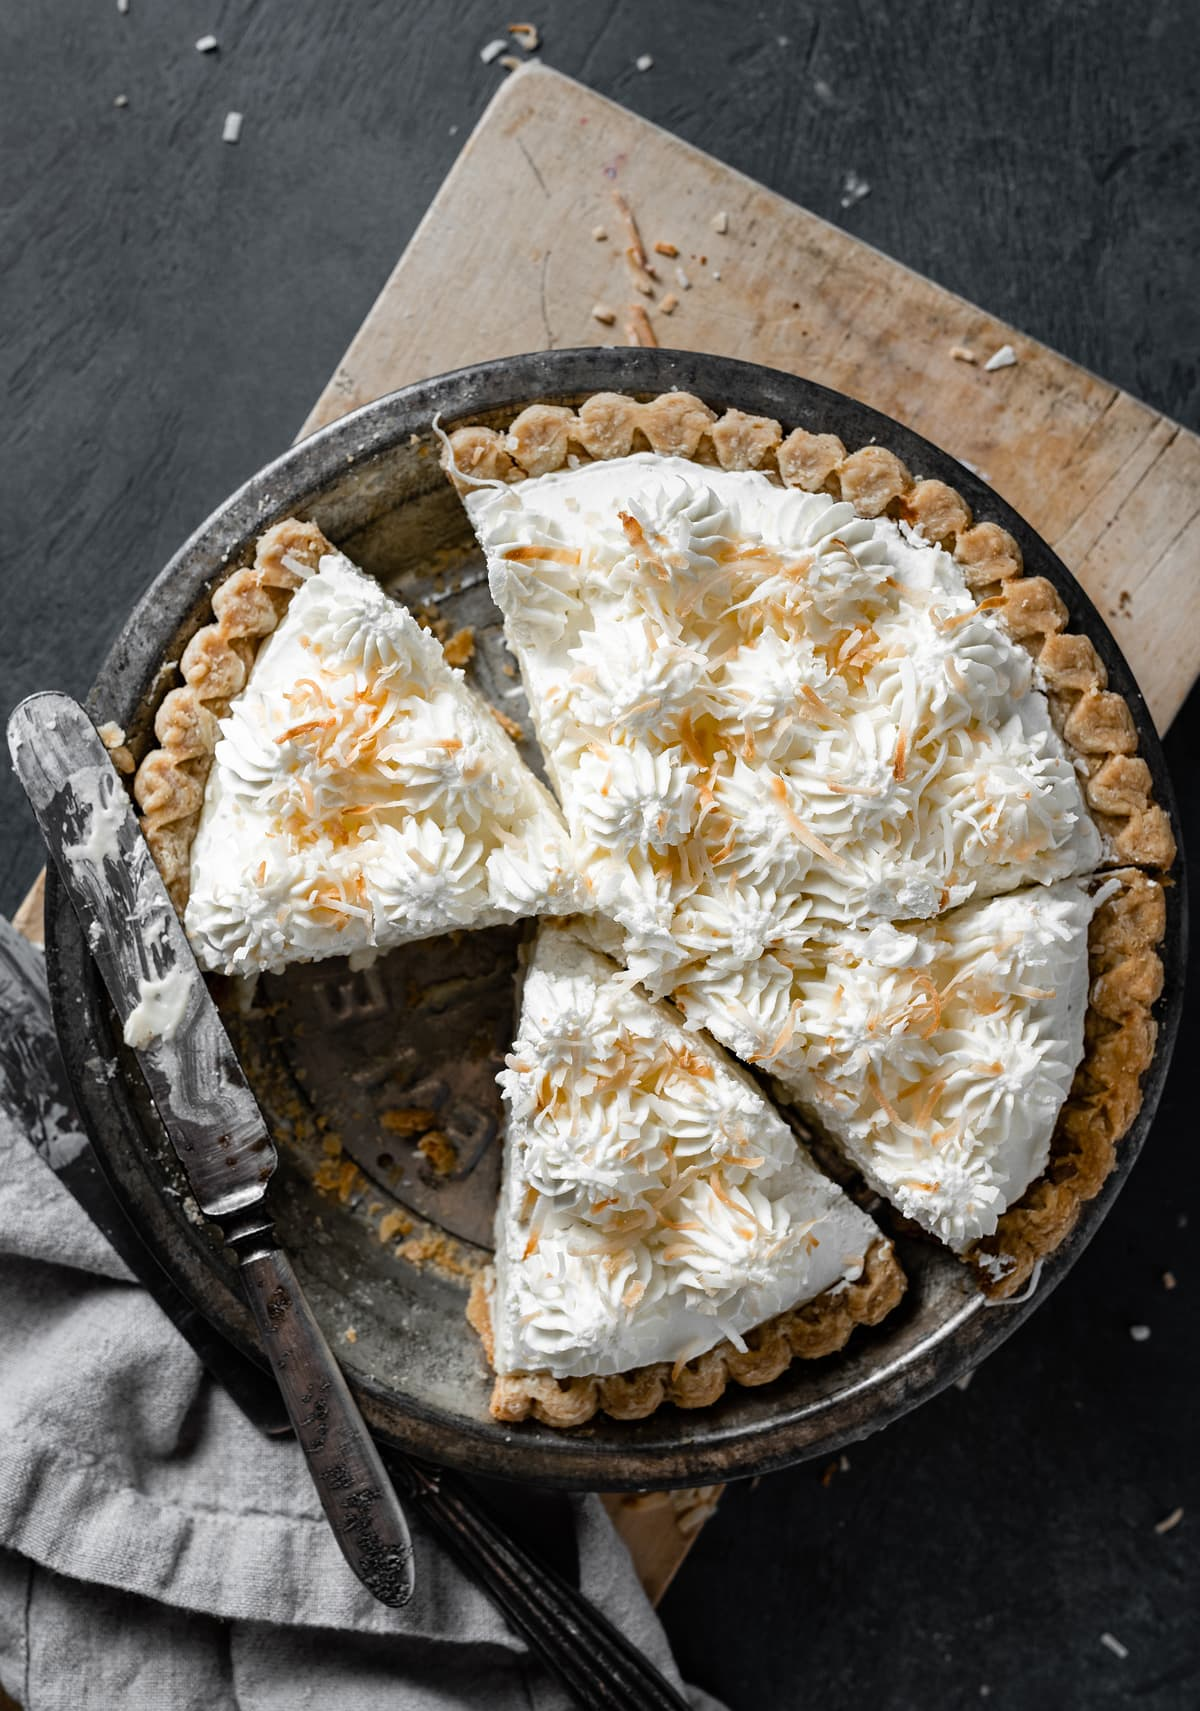 Whole coconut cream pie in a pie dish with slices cut. Pie is sitting on a wooden cutting board over a dark surface.